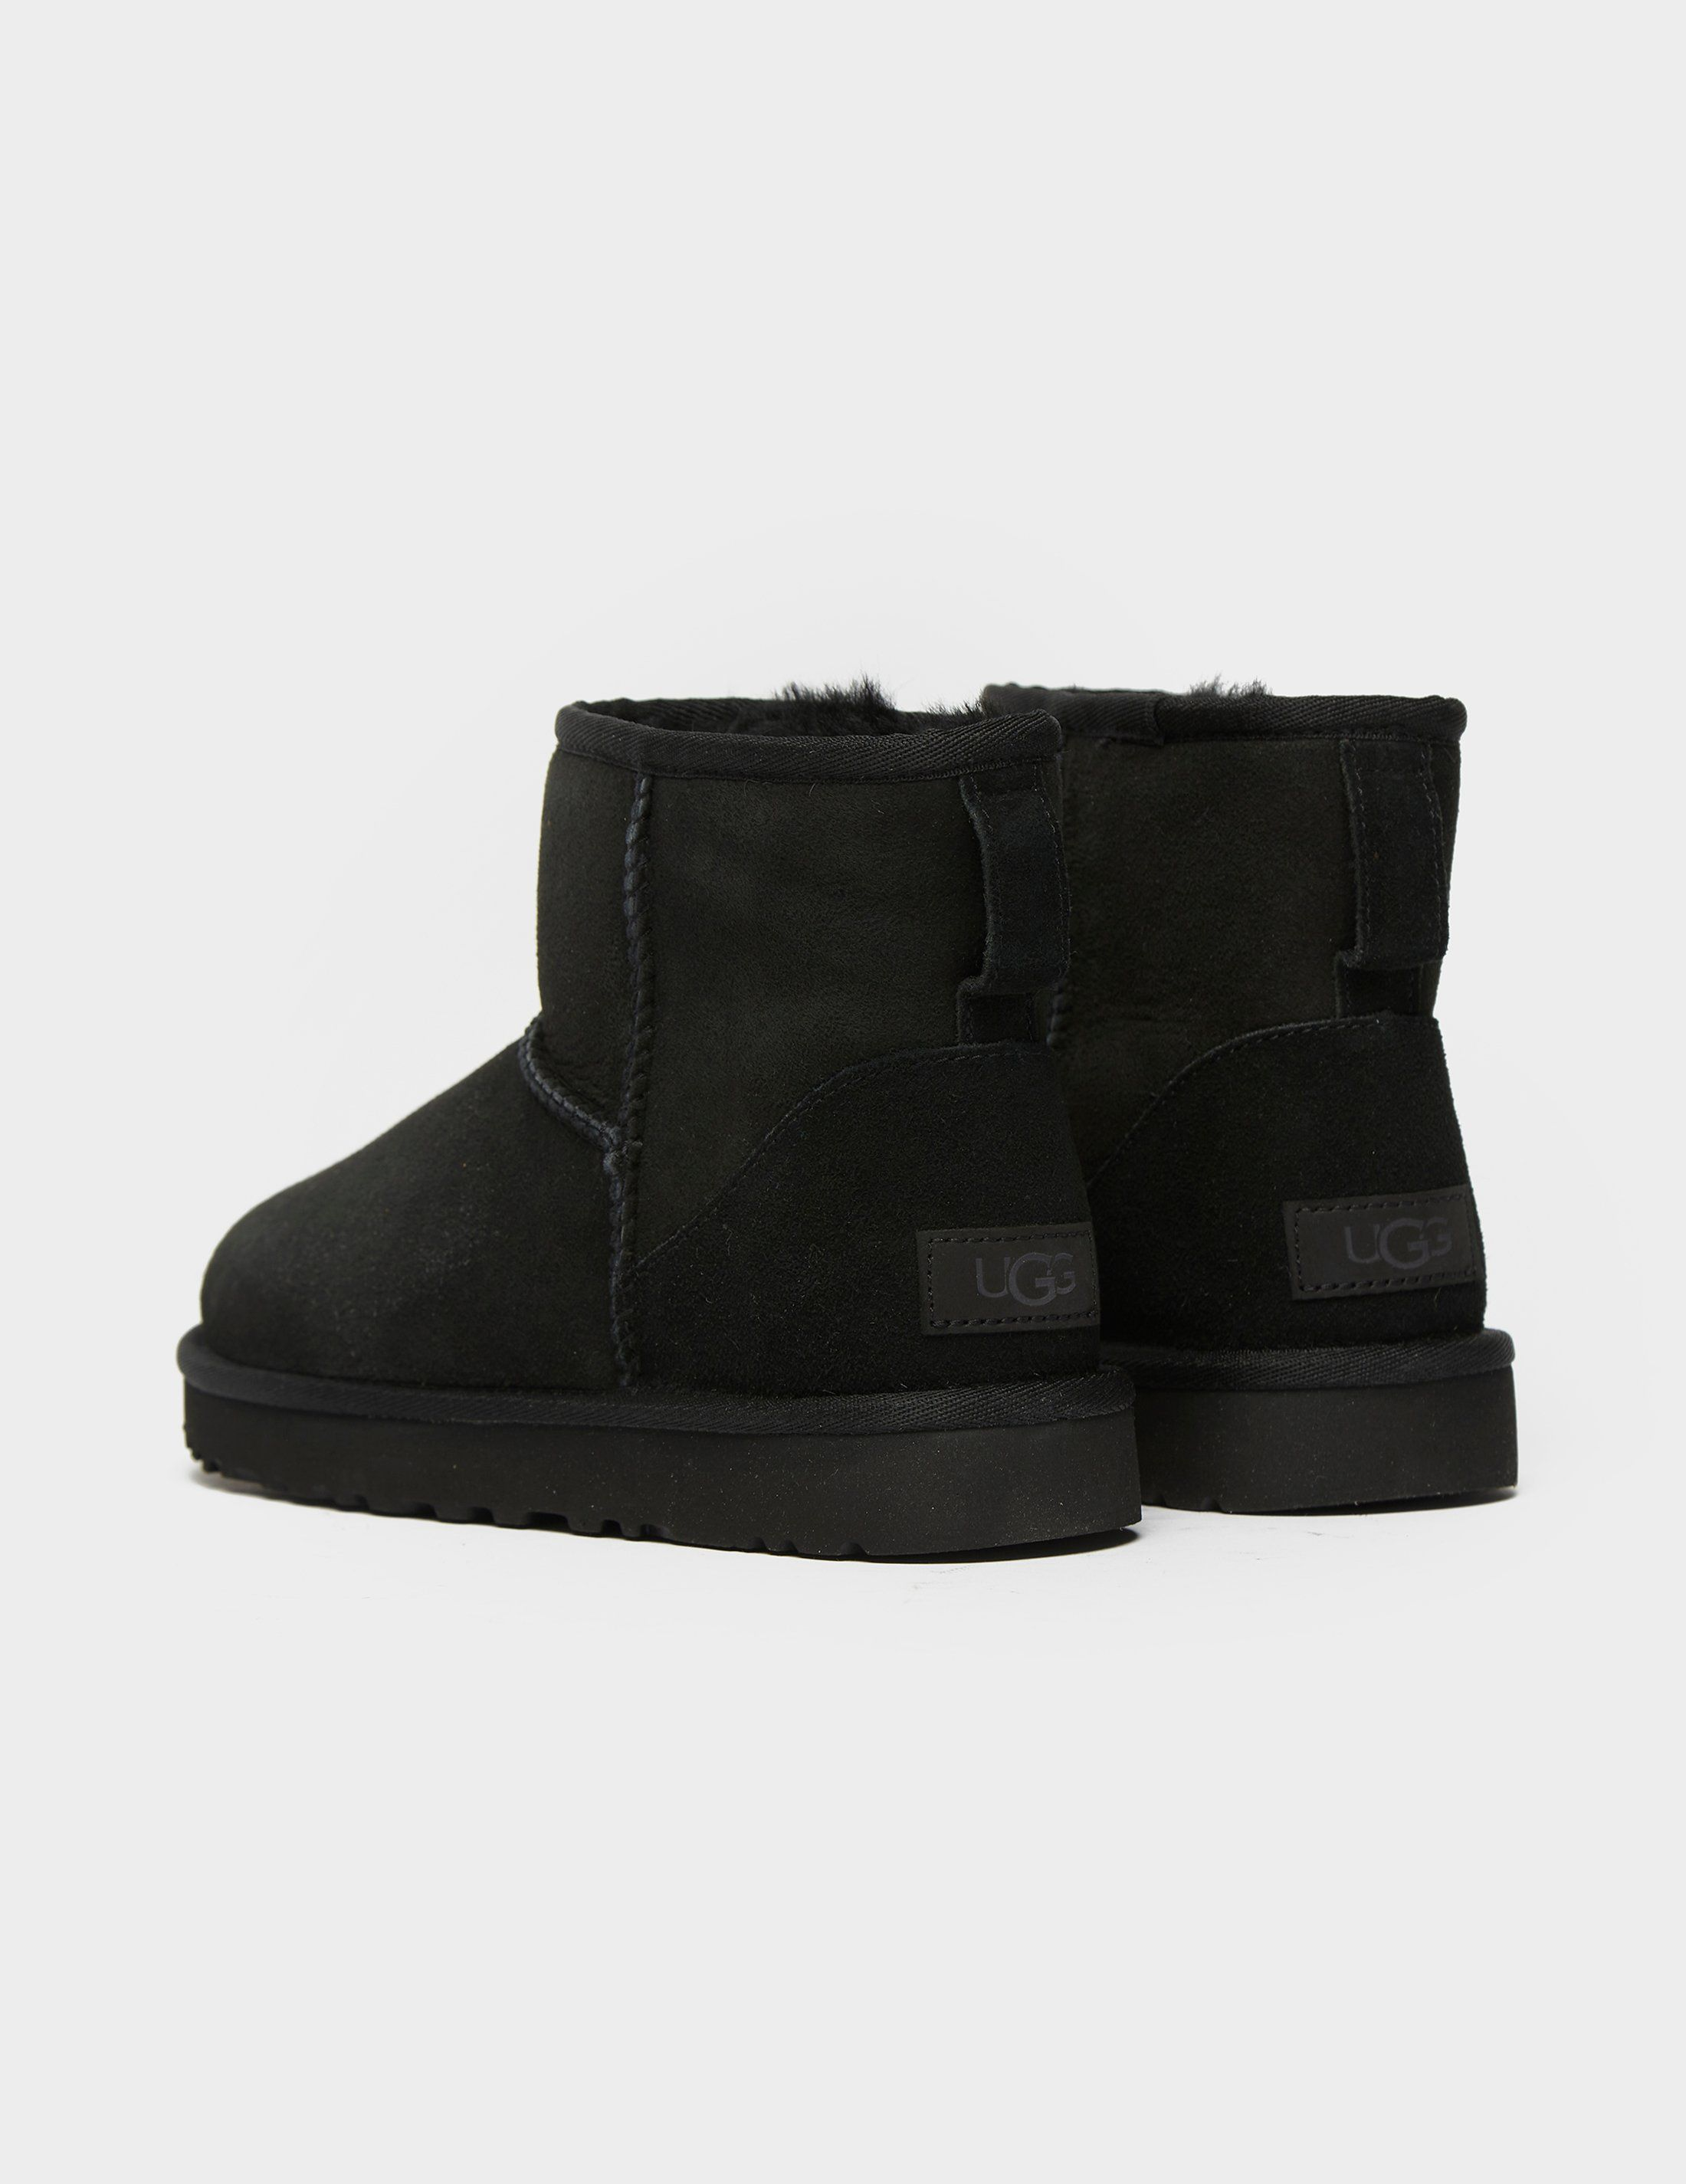 UGG Classic Mini Boots - Online Exclusive